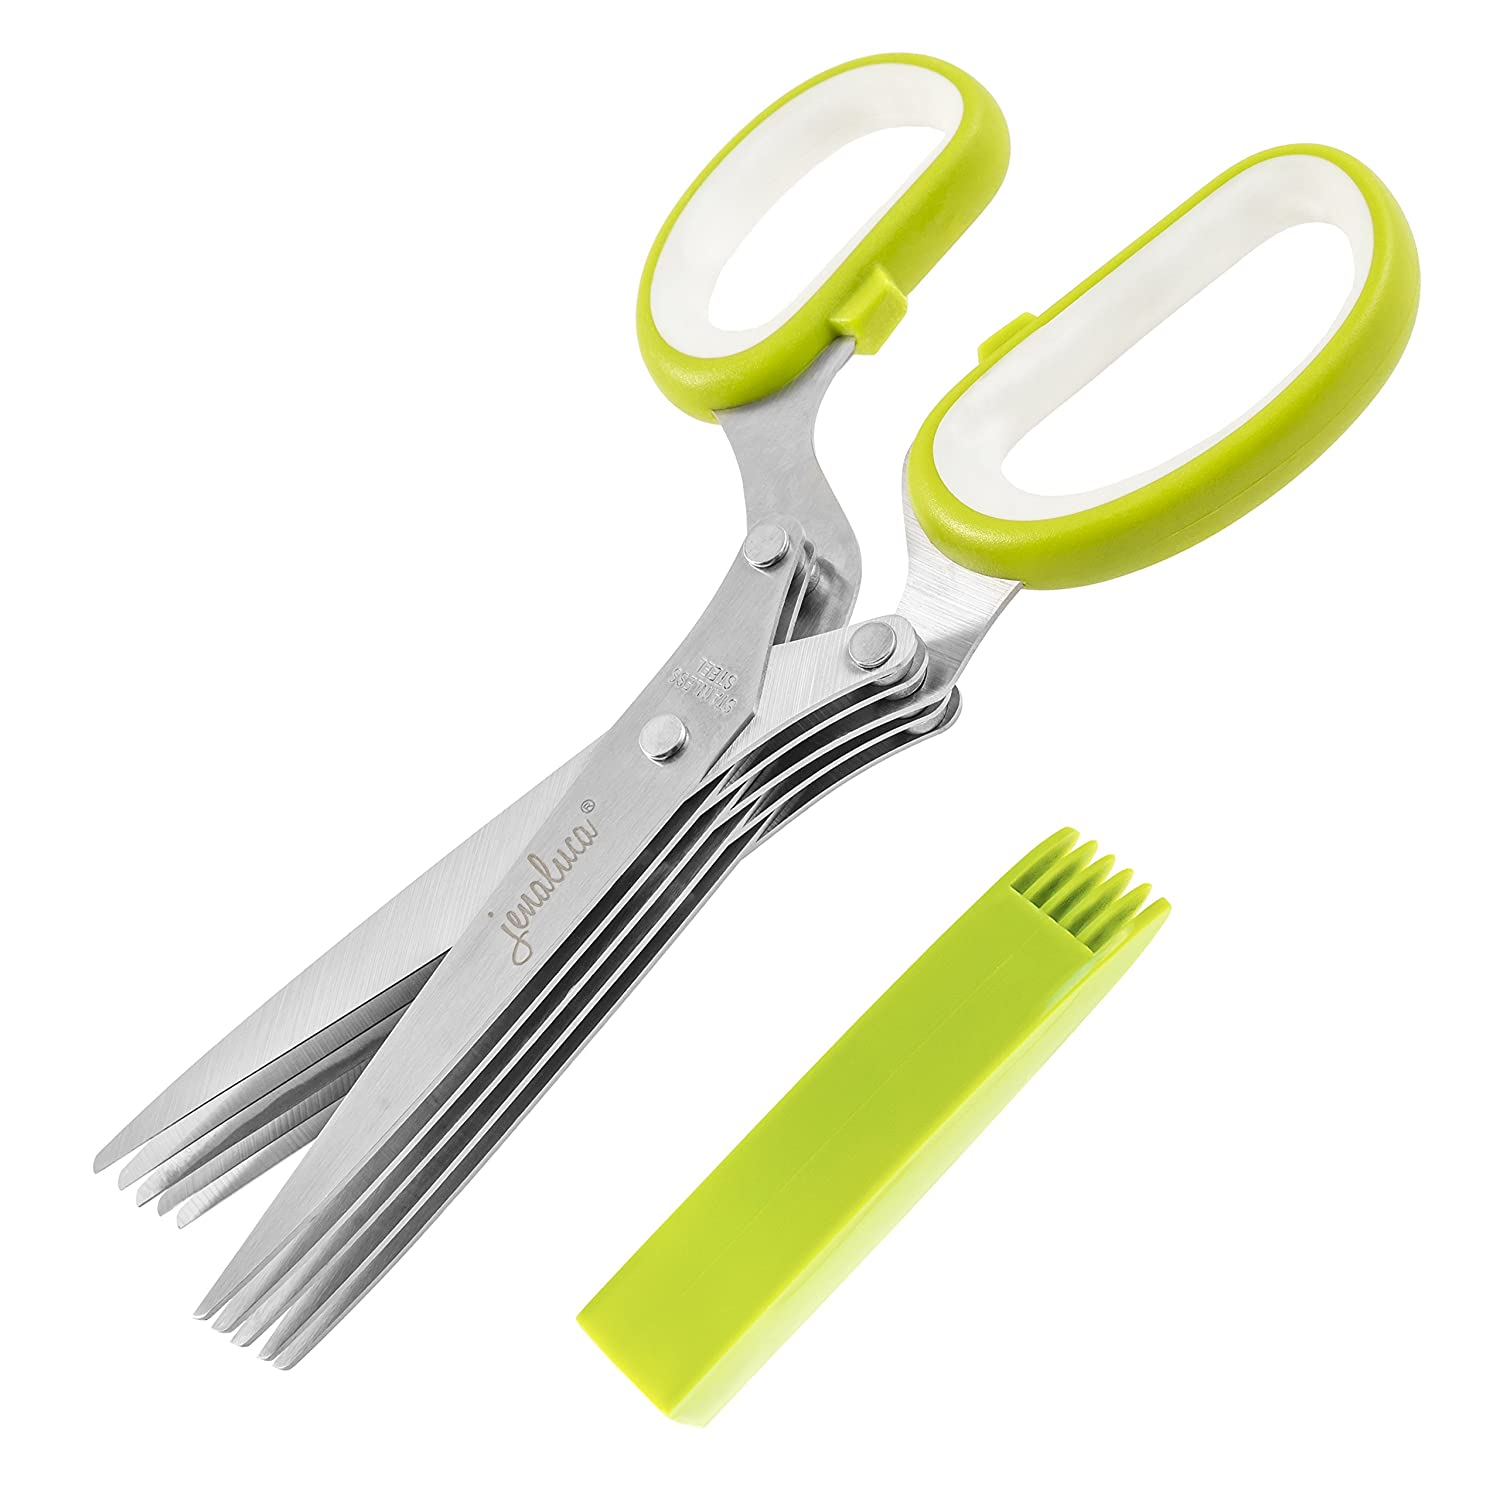 Stainless Steel - Multipurpose Kitchen Shear with 5 Blades